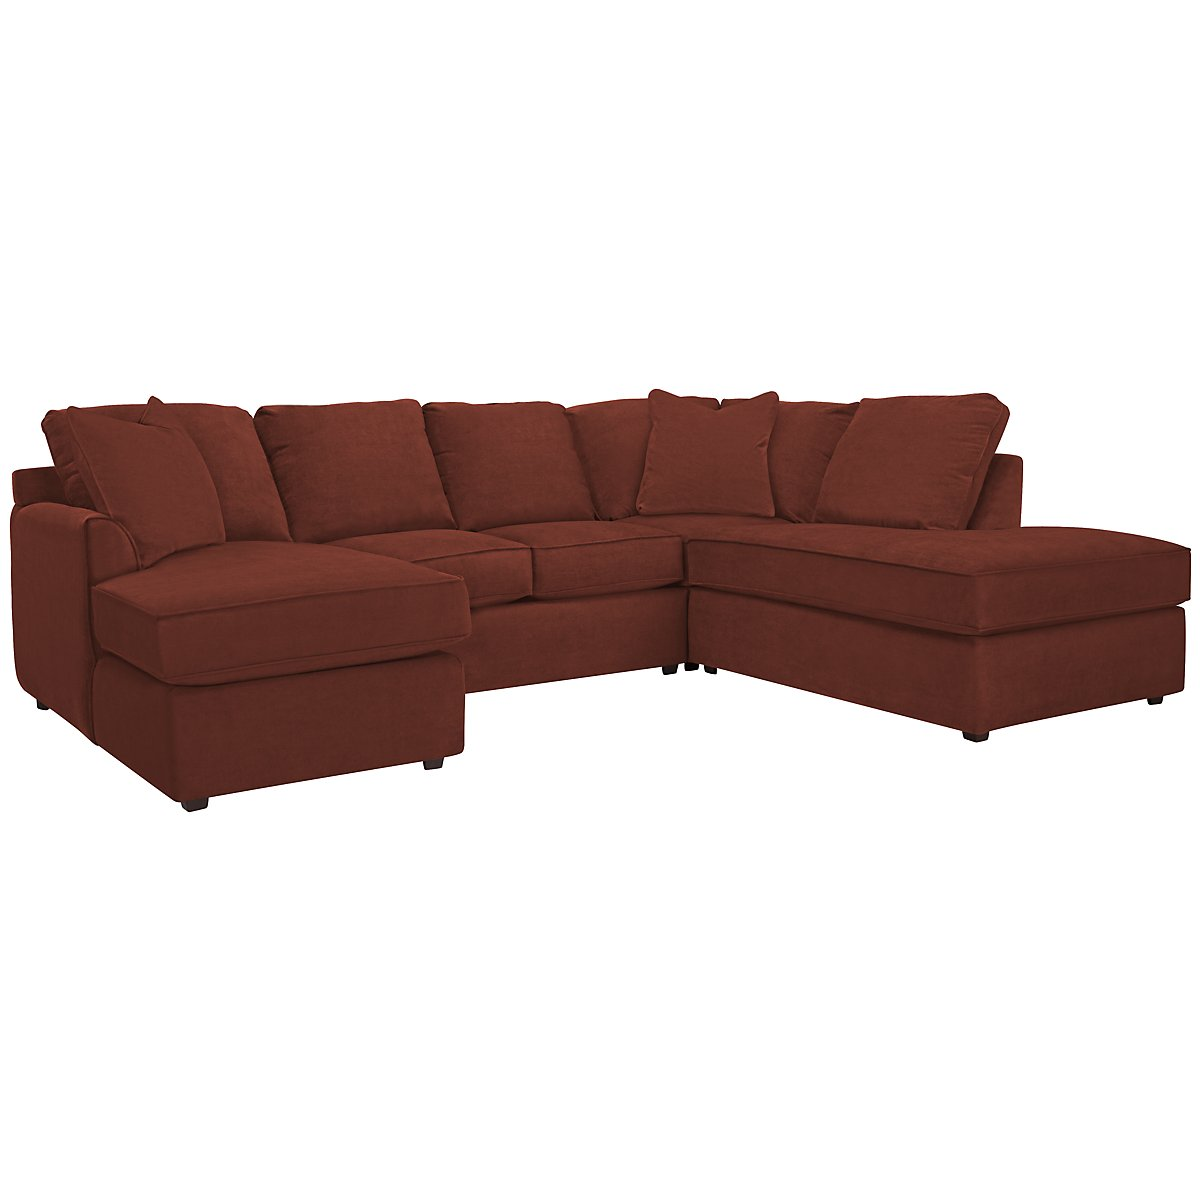 Express3 Red Microfiber Small Right Bumper Sectional